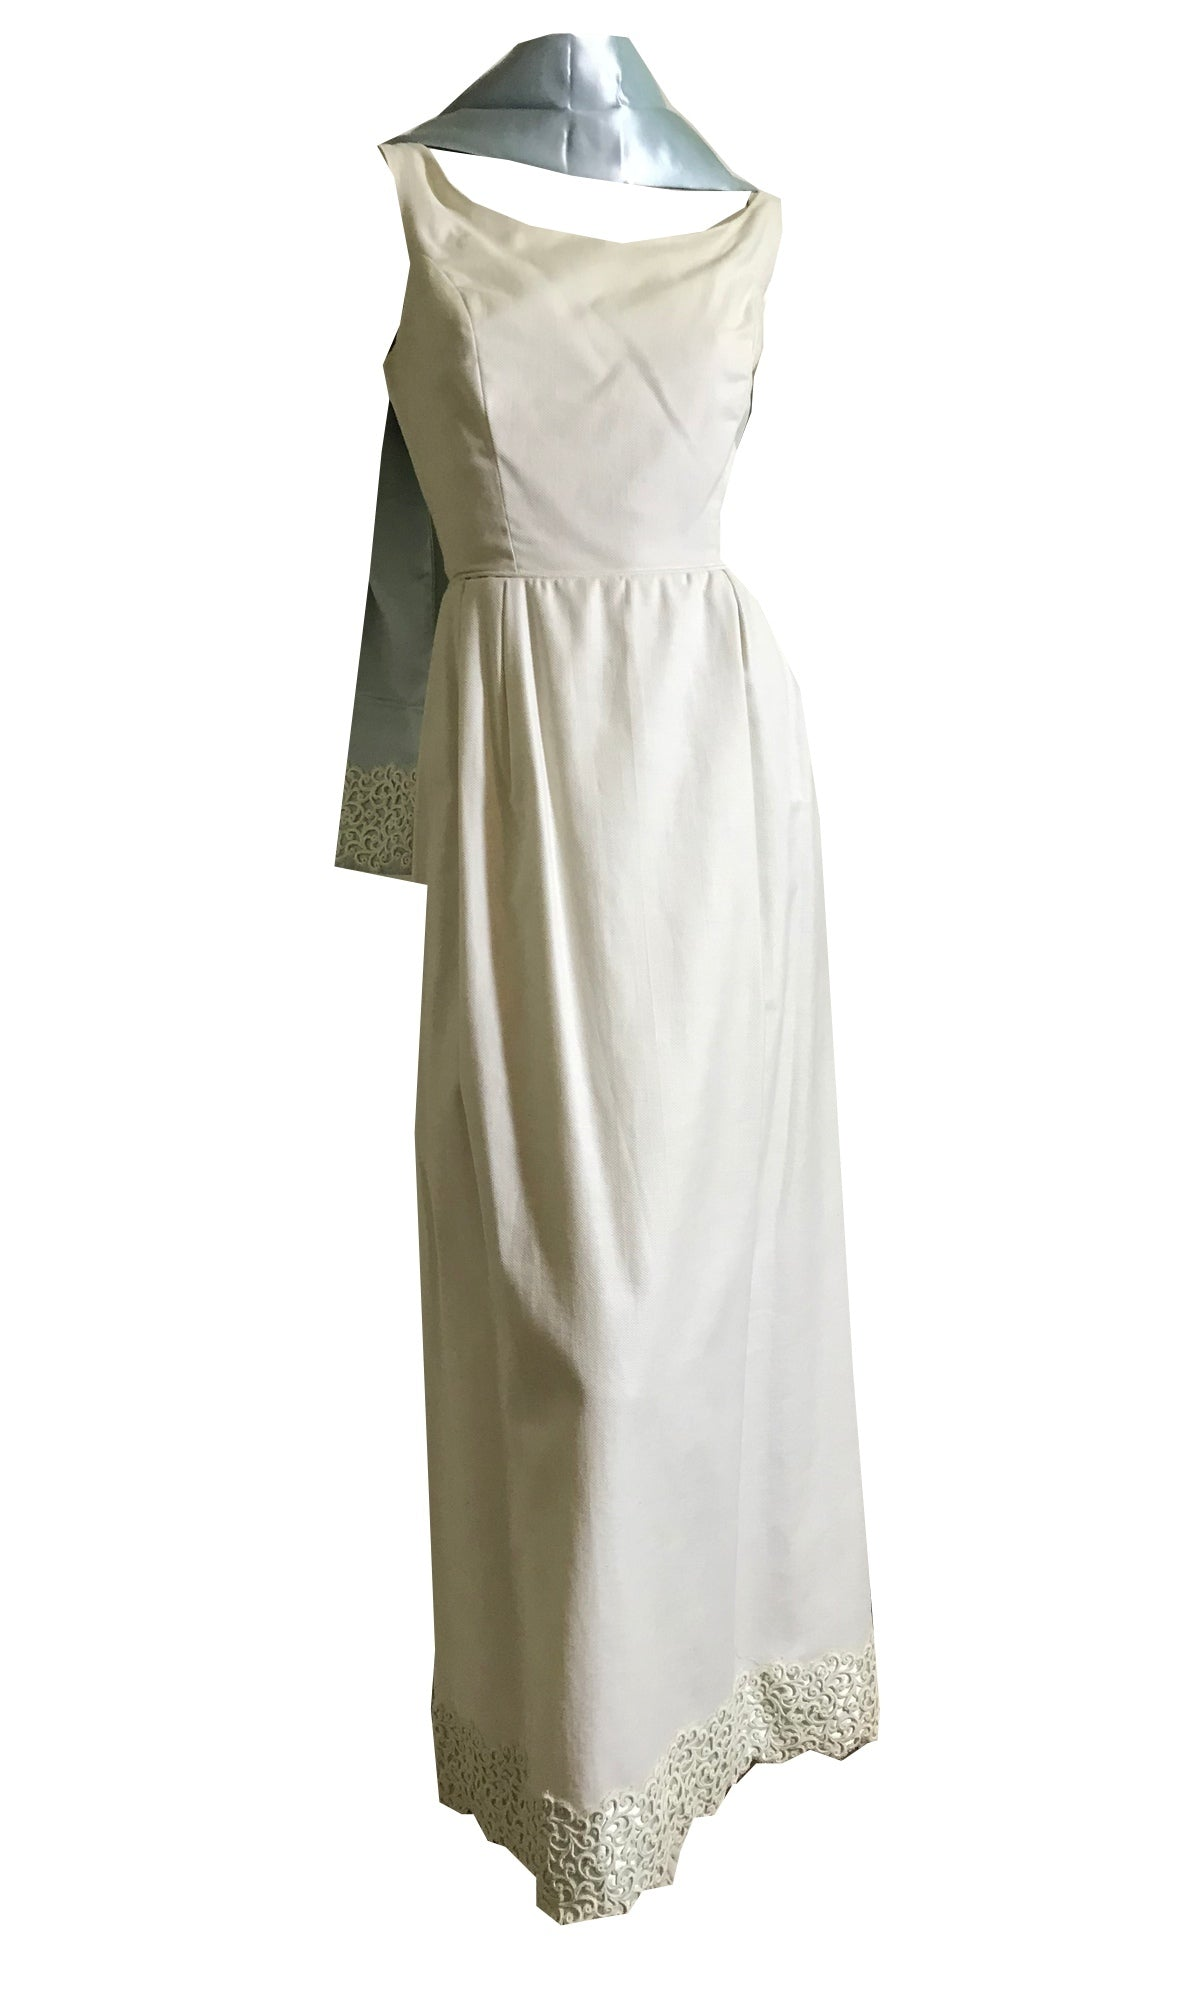 Elegant White Pique Cotton Column Dress with Blue Satin Backed Wrap circa 1960s